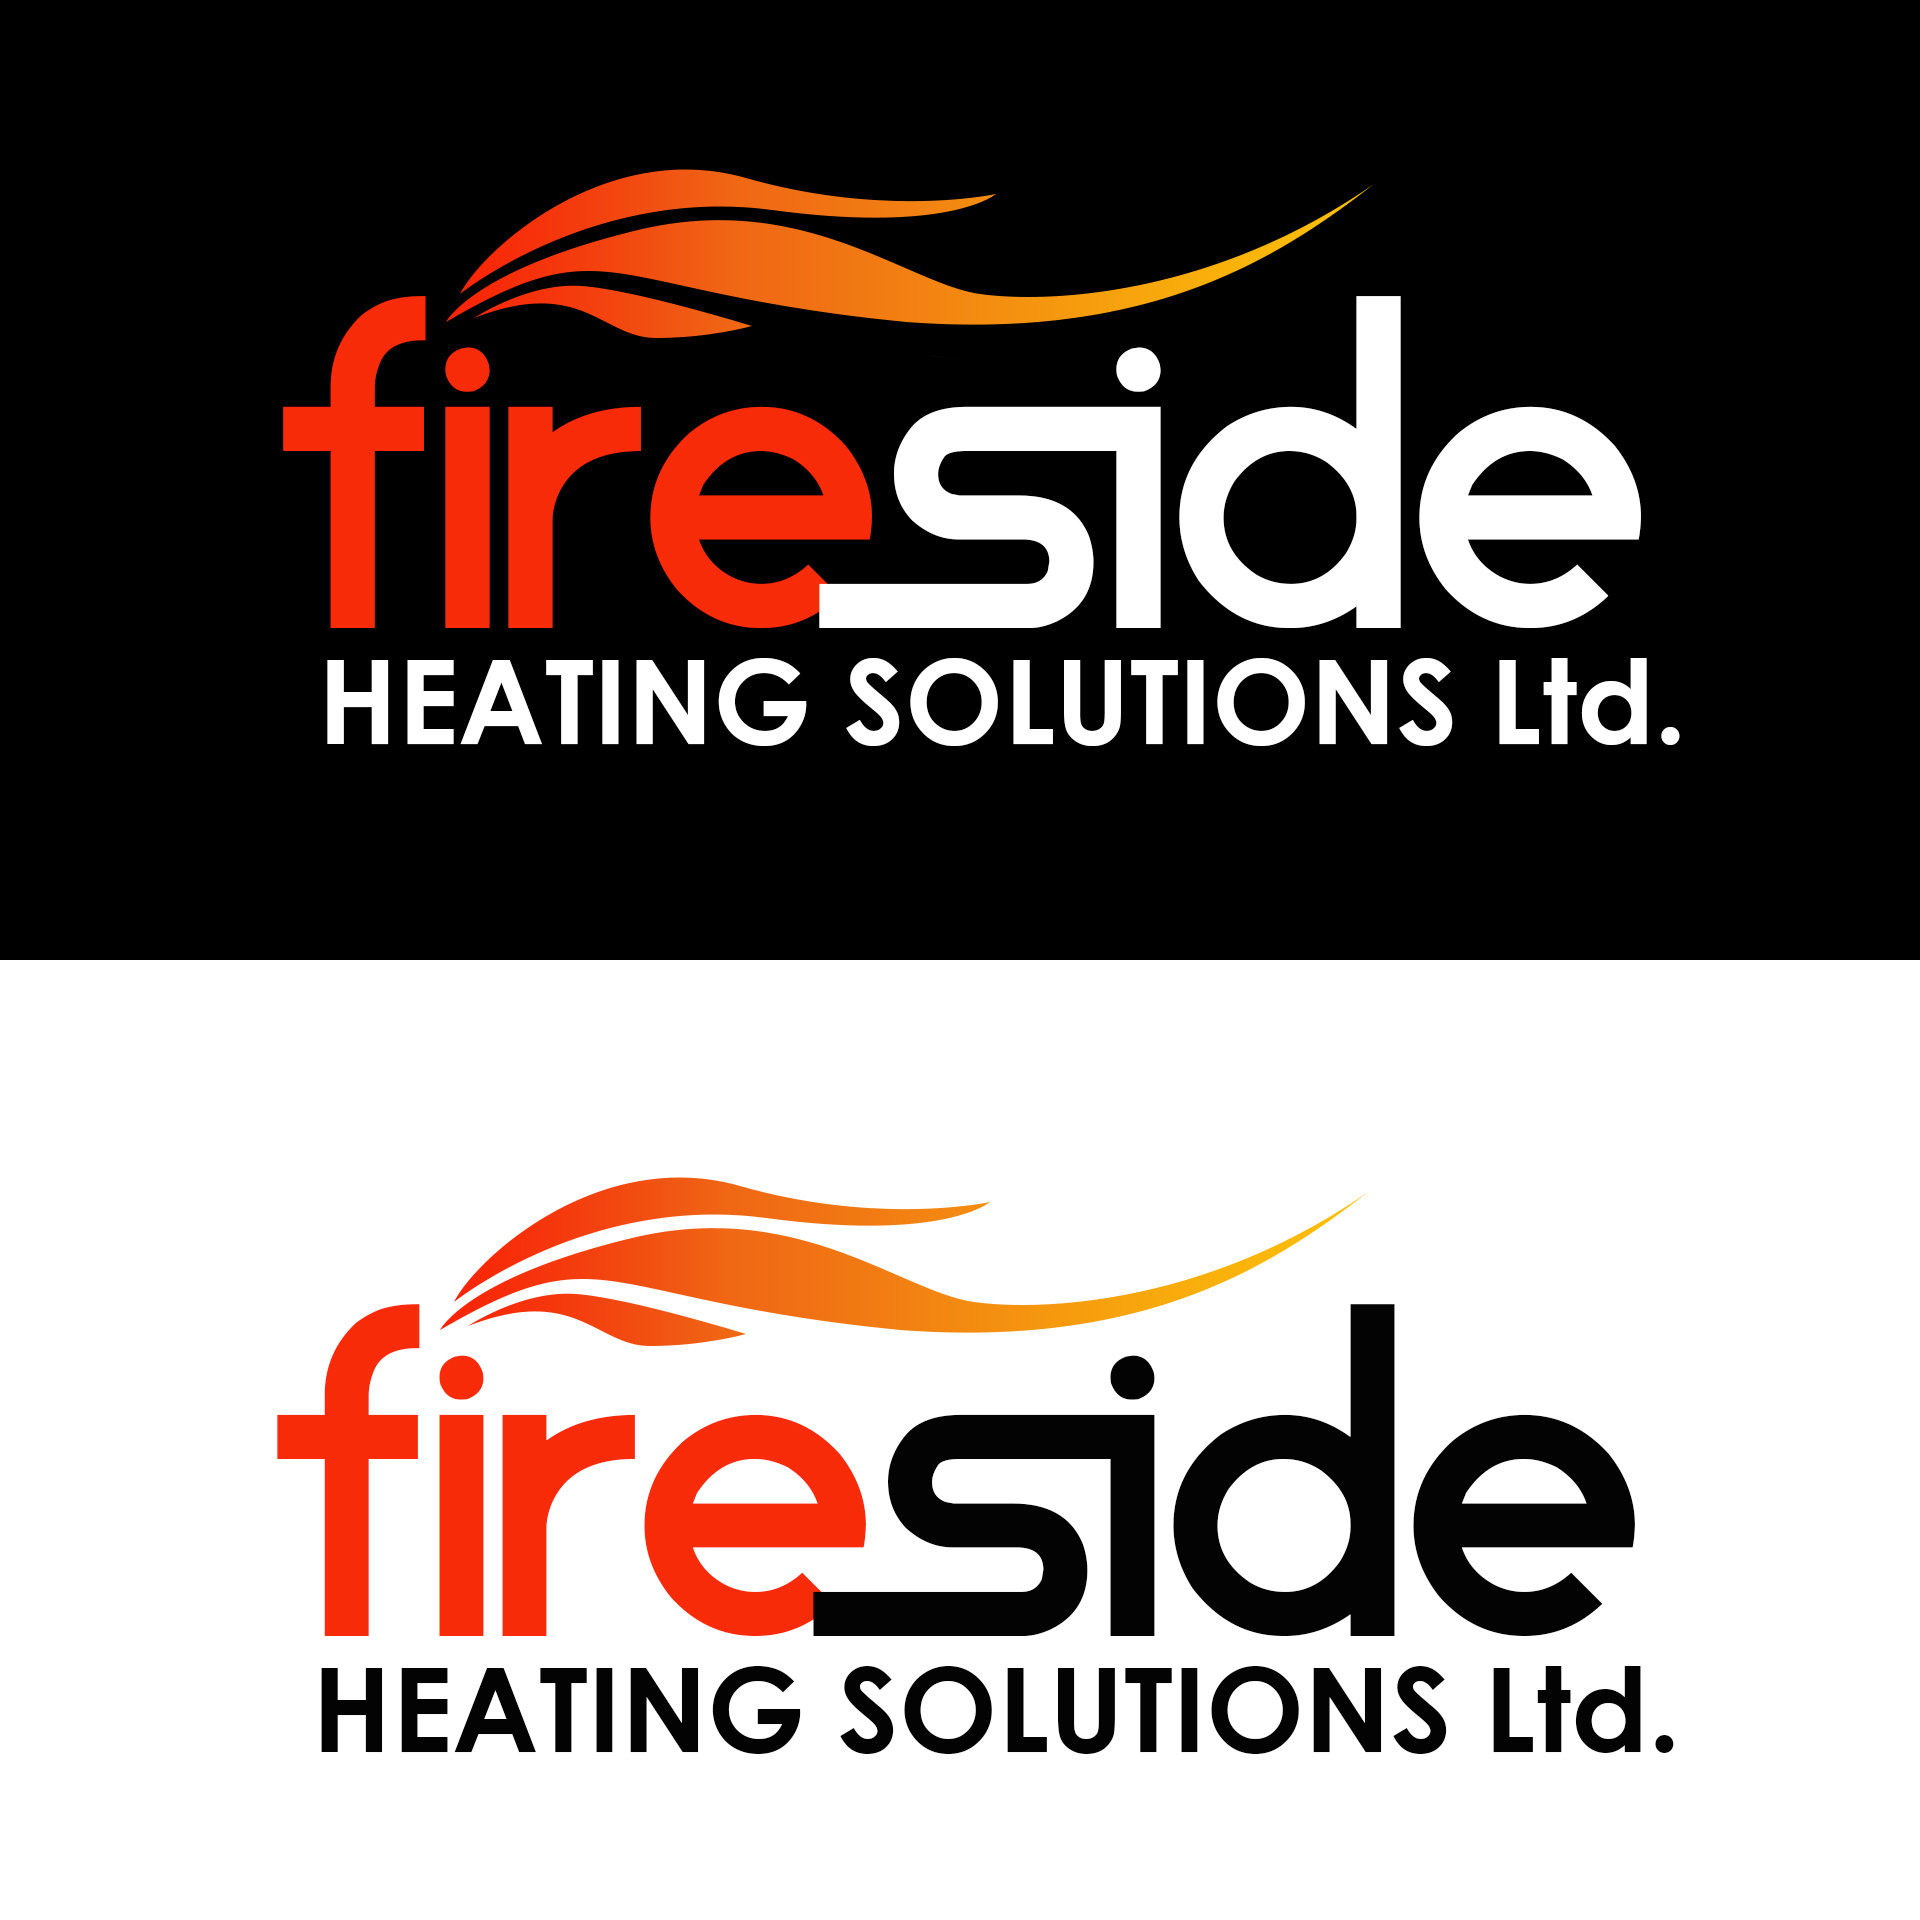 Logo Design by chAnDOS - Entry No. 122 in the Logo Design Contest Creative Logo Design for Fireside Heating Solutions Ltd..